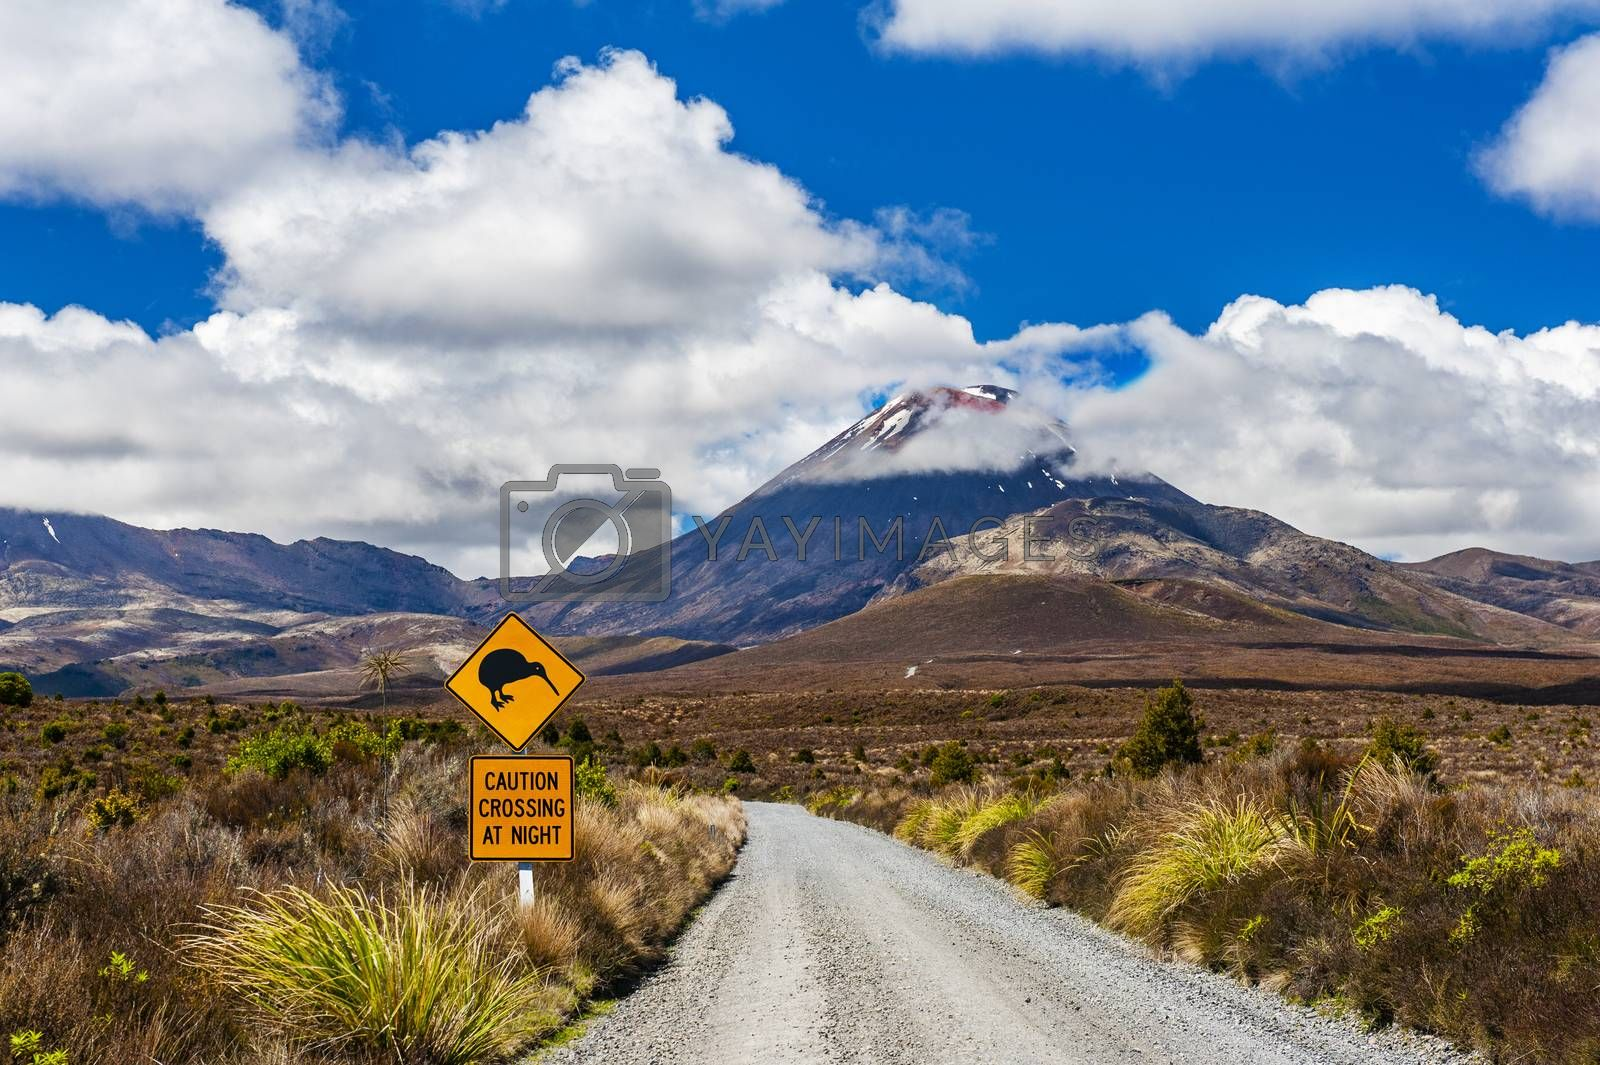 Kiwi sign near the road leading to famous volcano Mt. Ngauruhoe, national park Tongariro. New Zealand.